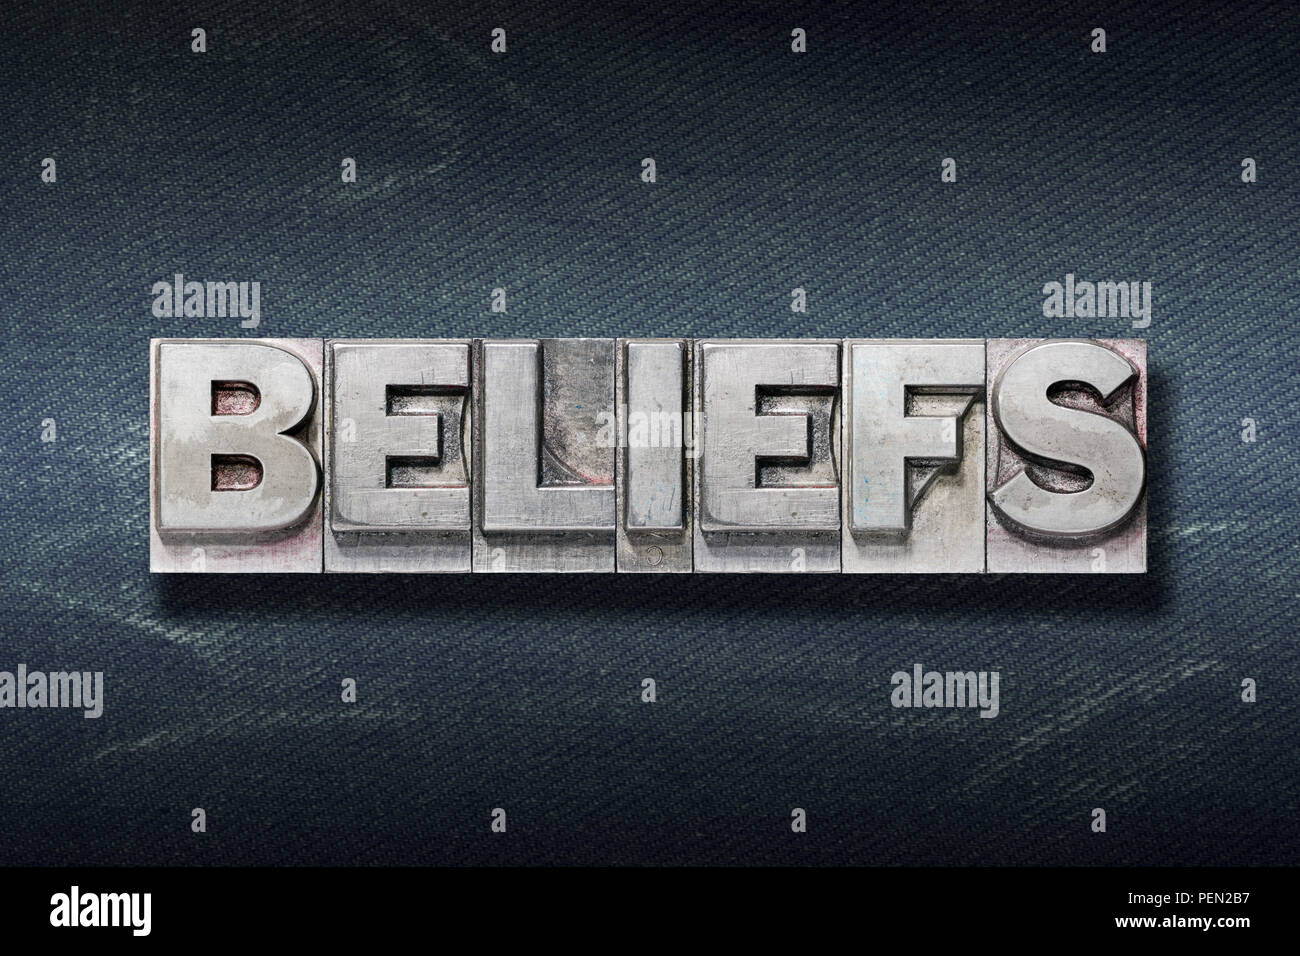 beliefs word made from metallic letterpress on dark jeans background - Stock Image